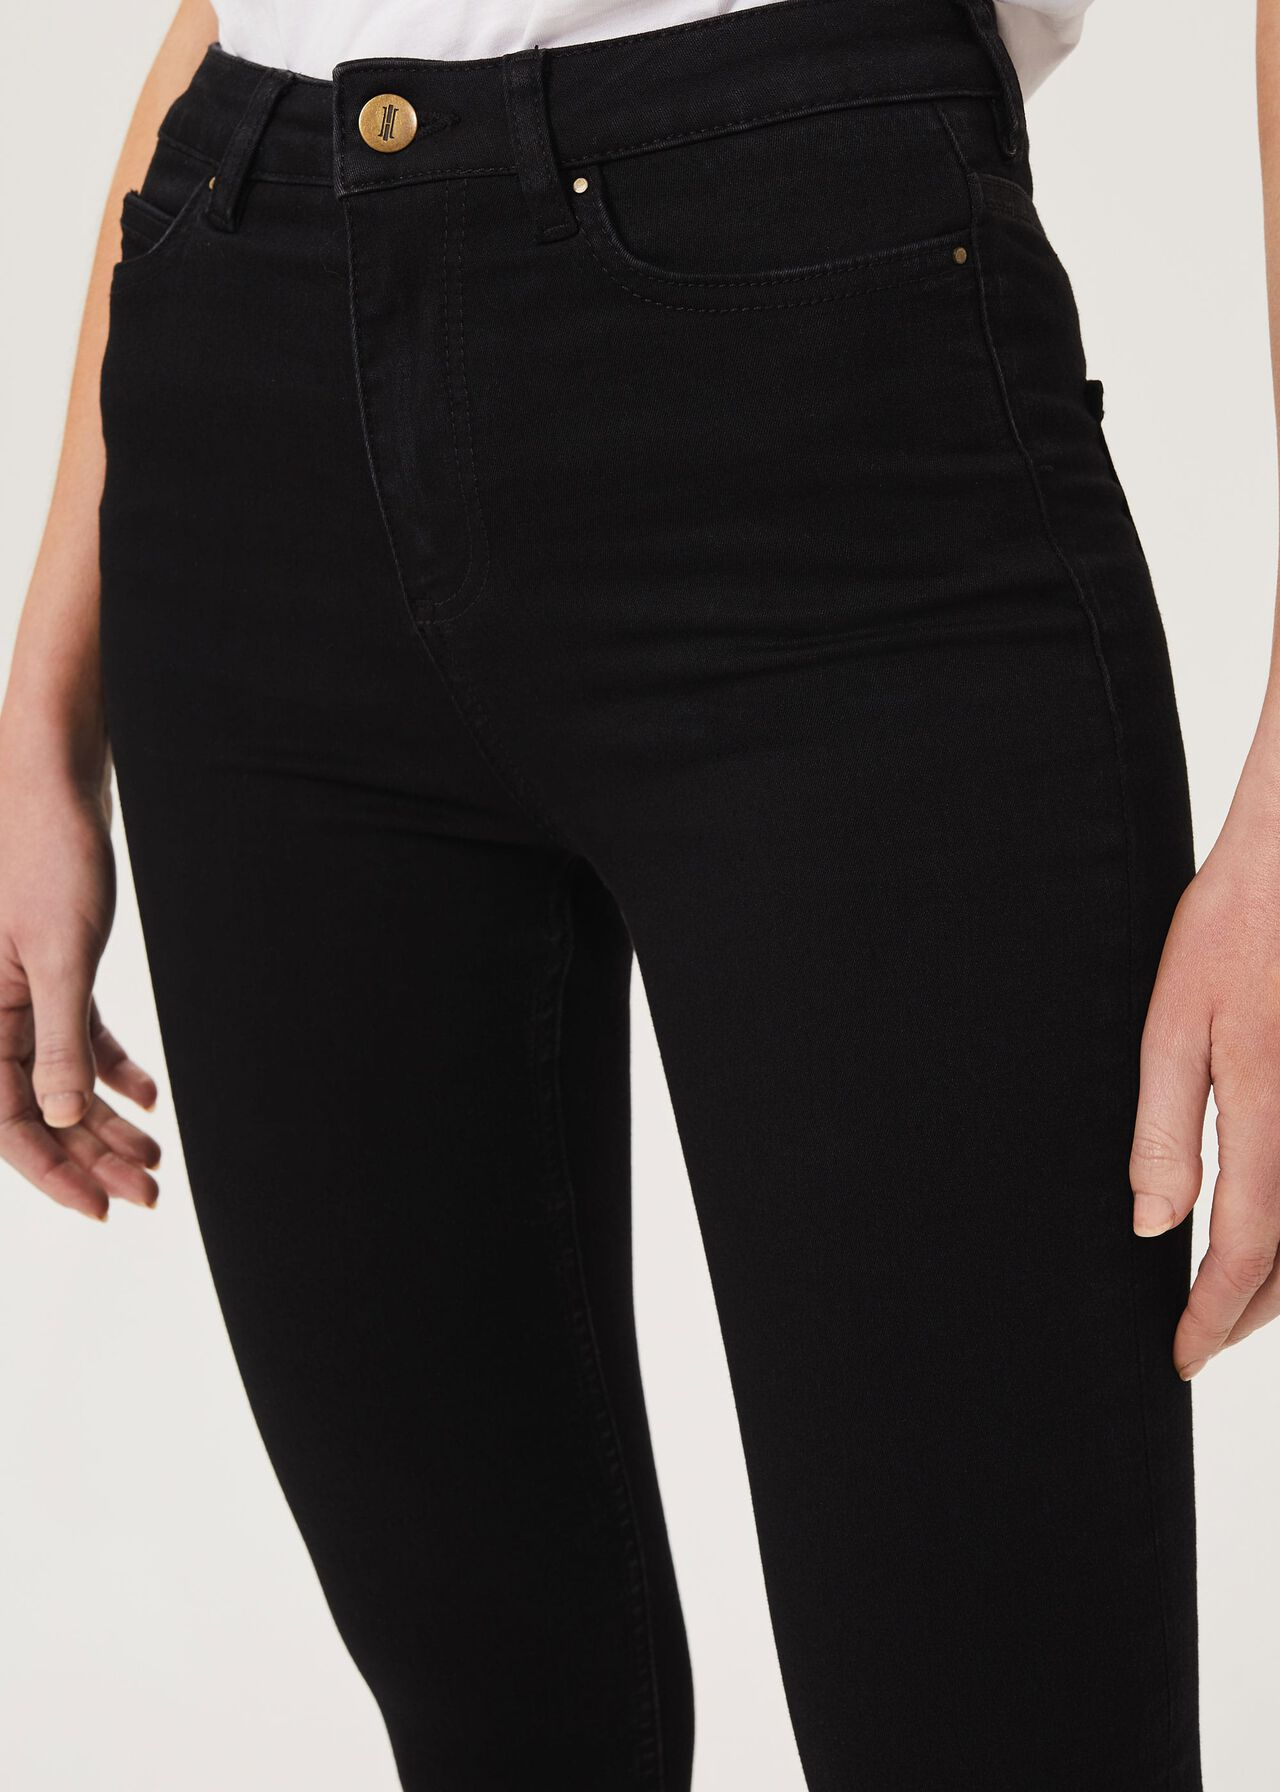 Gia Sculpting Jean With Stretch, Black, hi-res